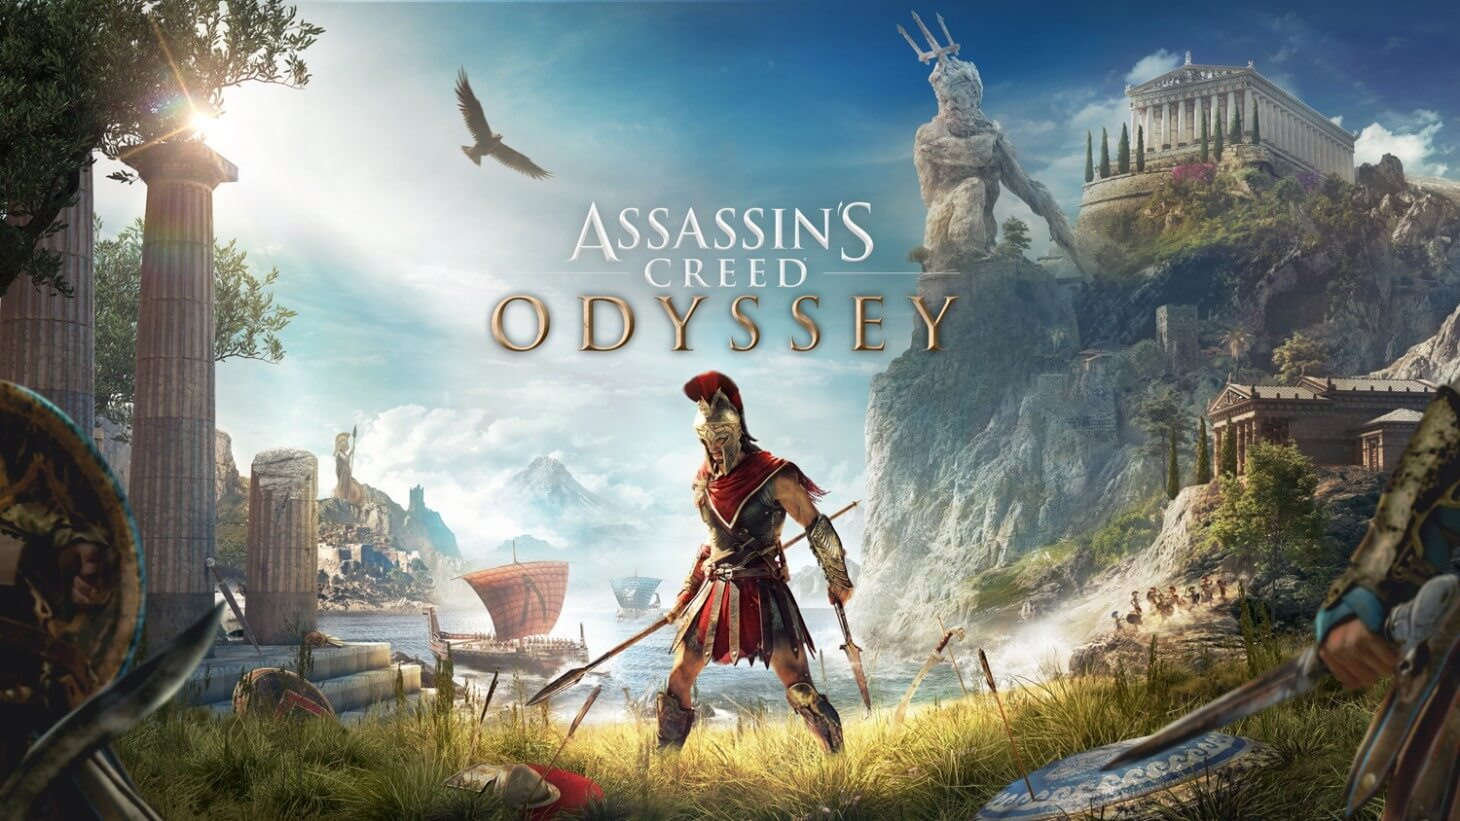 Assassin's Creed Odyssey goes free to play until March 22nd, pre-load available now